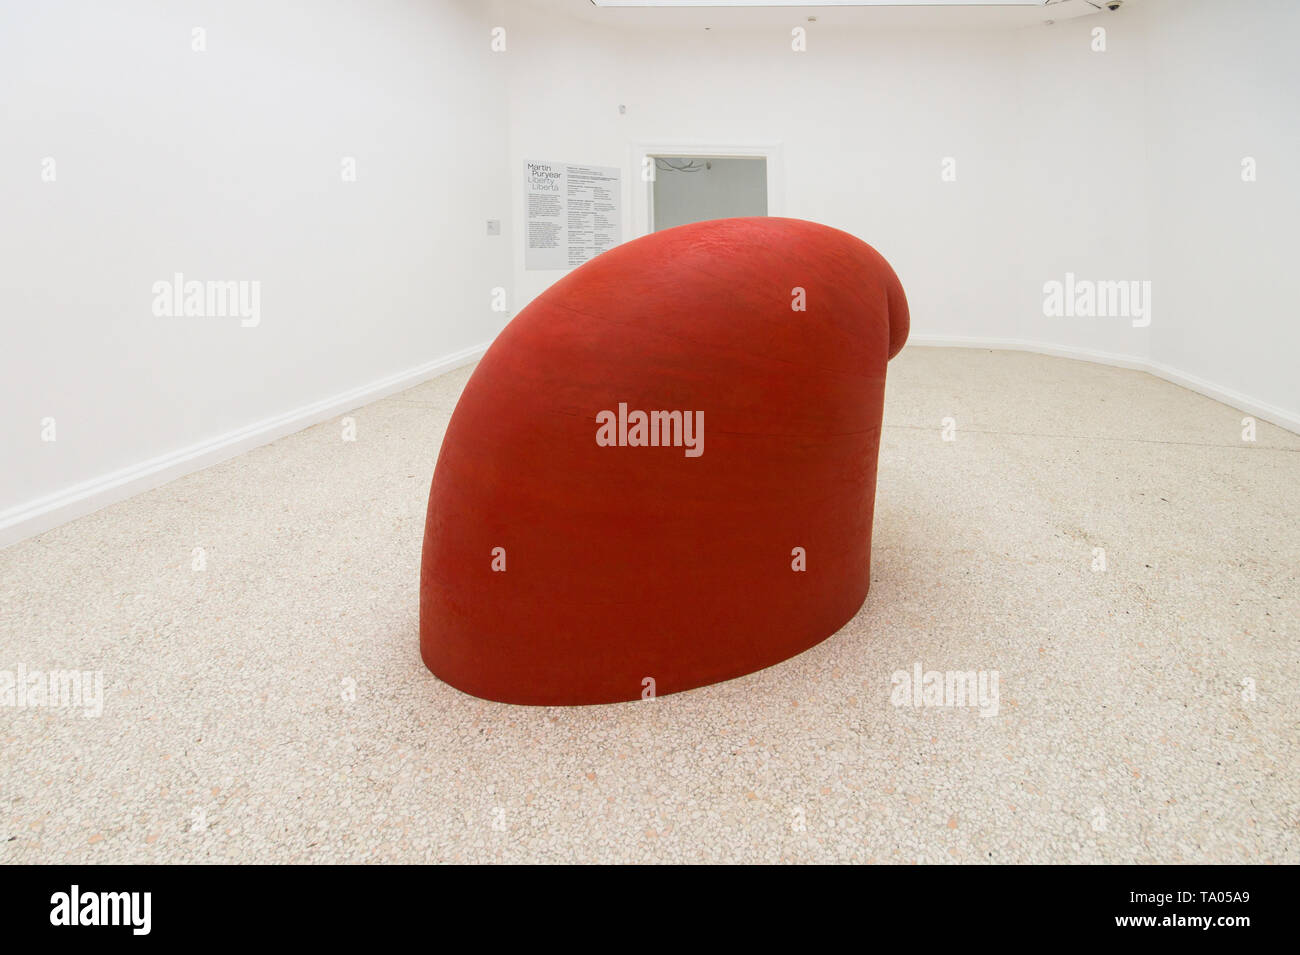 Martin Puryear, Big Phrygian, 2010, sculpture, Liberty / Libertà exhibition, United States Pavilion, 58th Venice Art Biennale 2019 - Stock Image